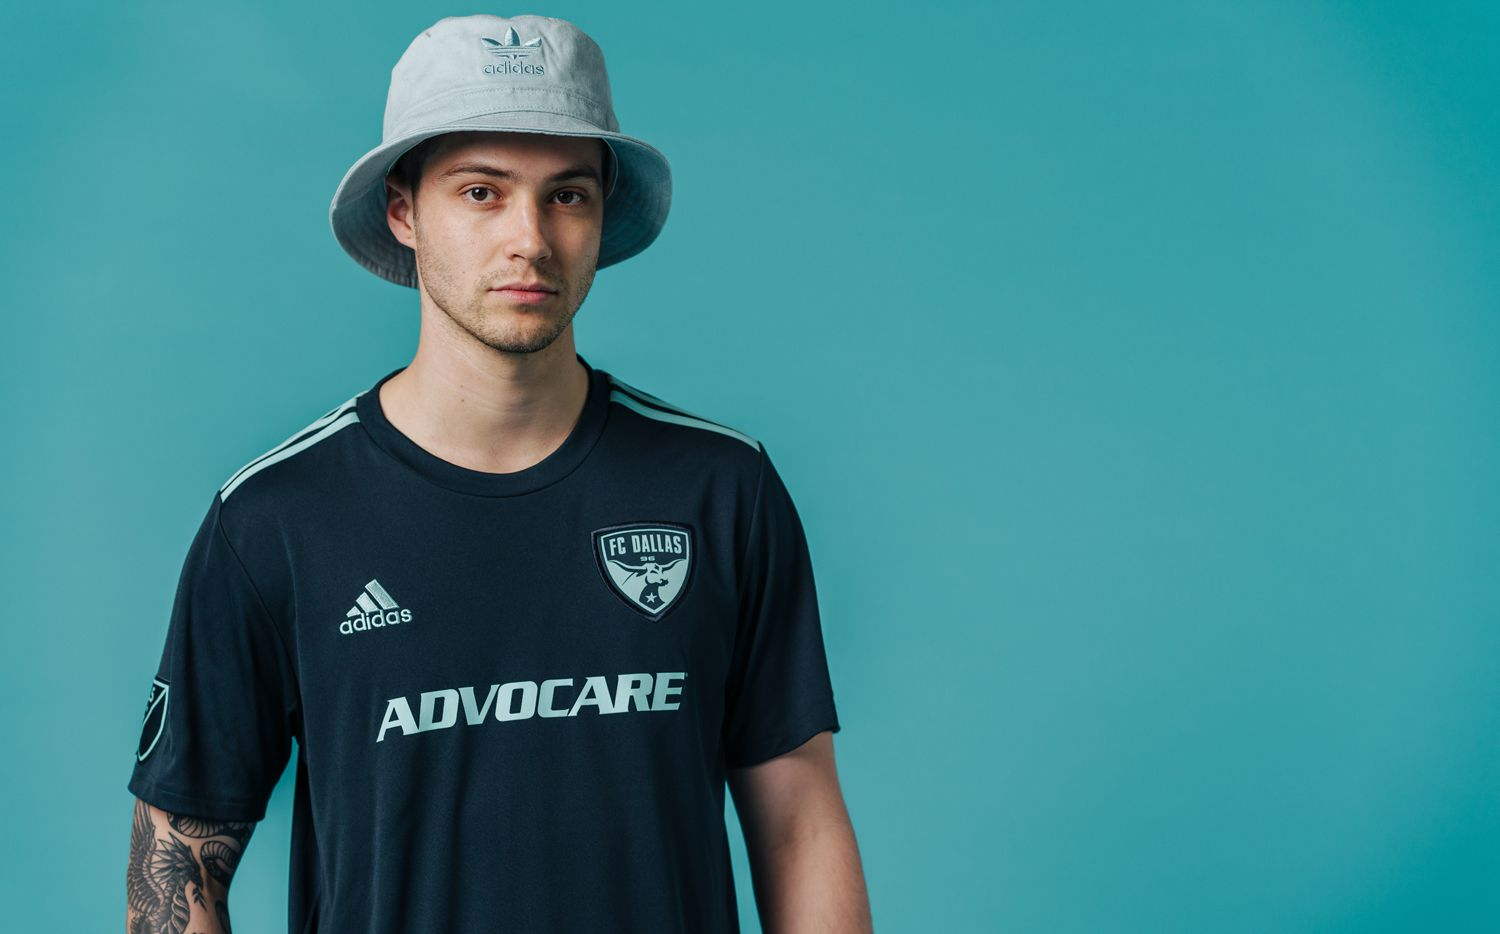 The 2019 adidas Parley jersey FC Dallas will wear on April 20th against Atlanta United.